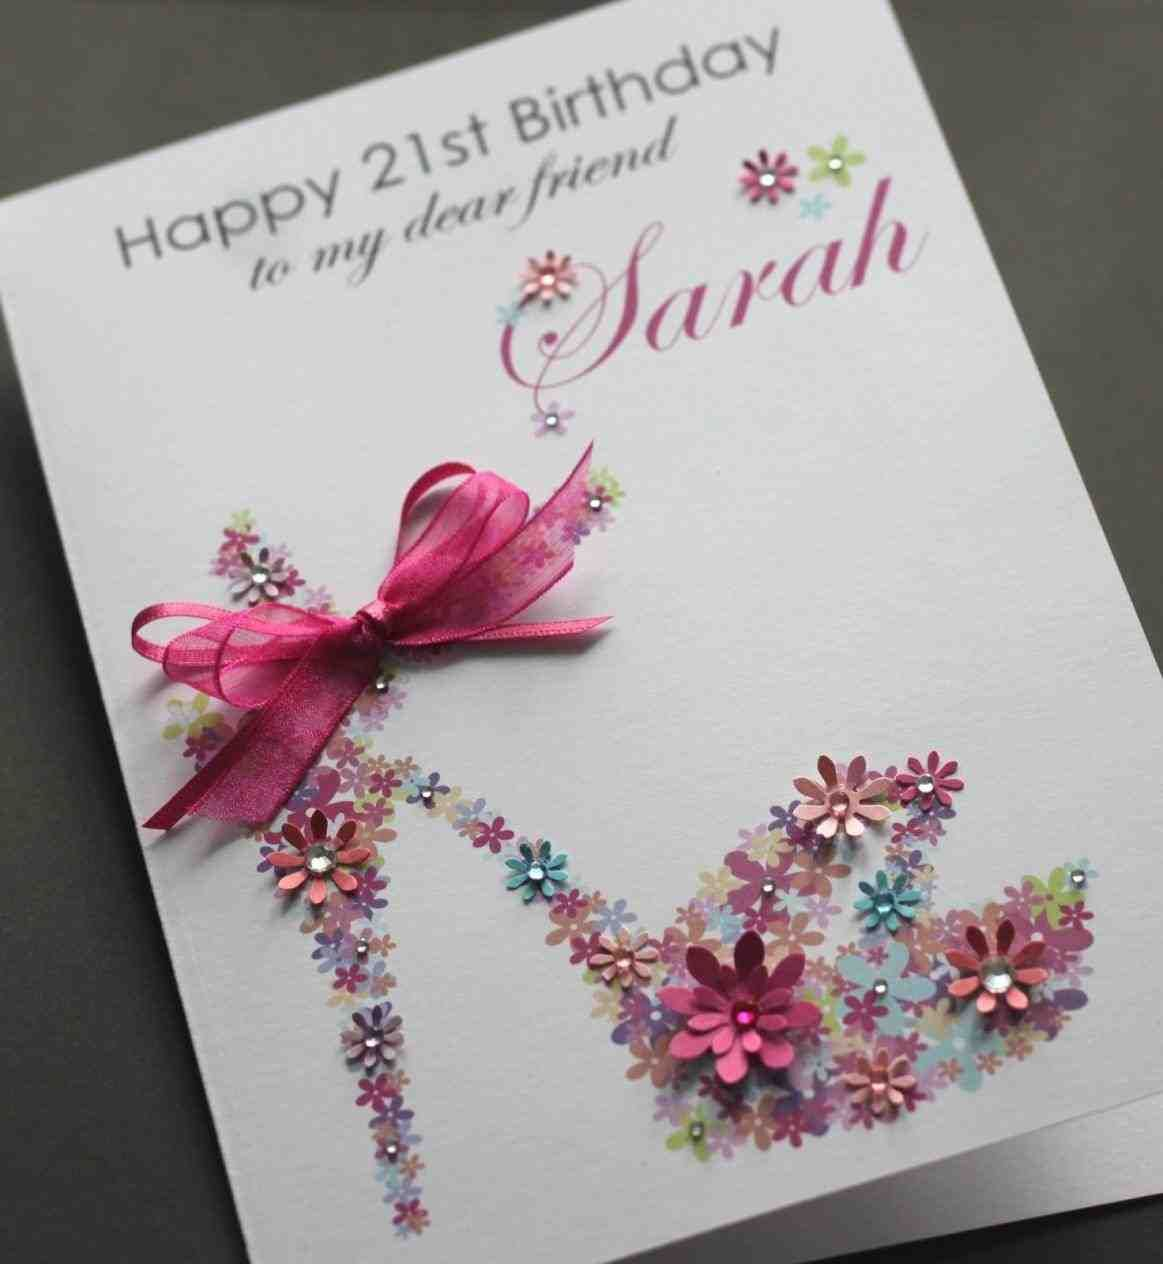 Birthday greeting cards for him to get ideas how to make your own birthday greeting cards for him to get ideas how to make your own birthday card design 6 birthday greeting cards for father in law combined with your kristyandbryce Image collections